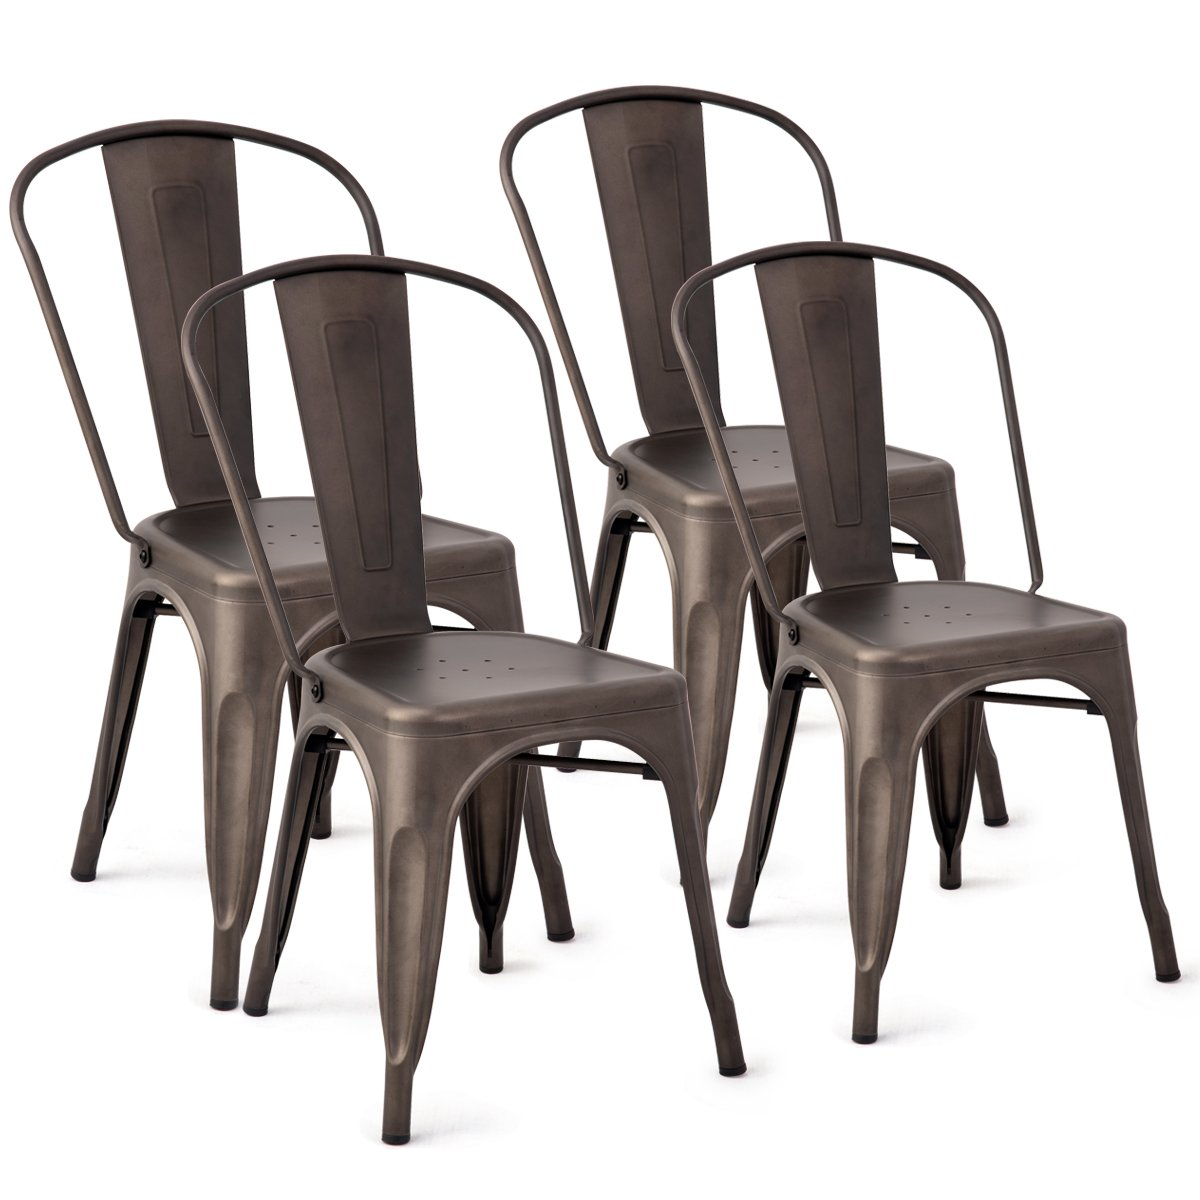 Costway Tolix Style Dining Chairs Metal Industrial Vintage Chic High Back Indoor Outdoor Dining Bistro Caf Kitchen Side Stackable Chair Set of 4 Copper